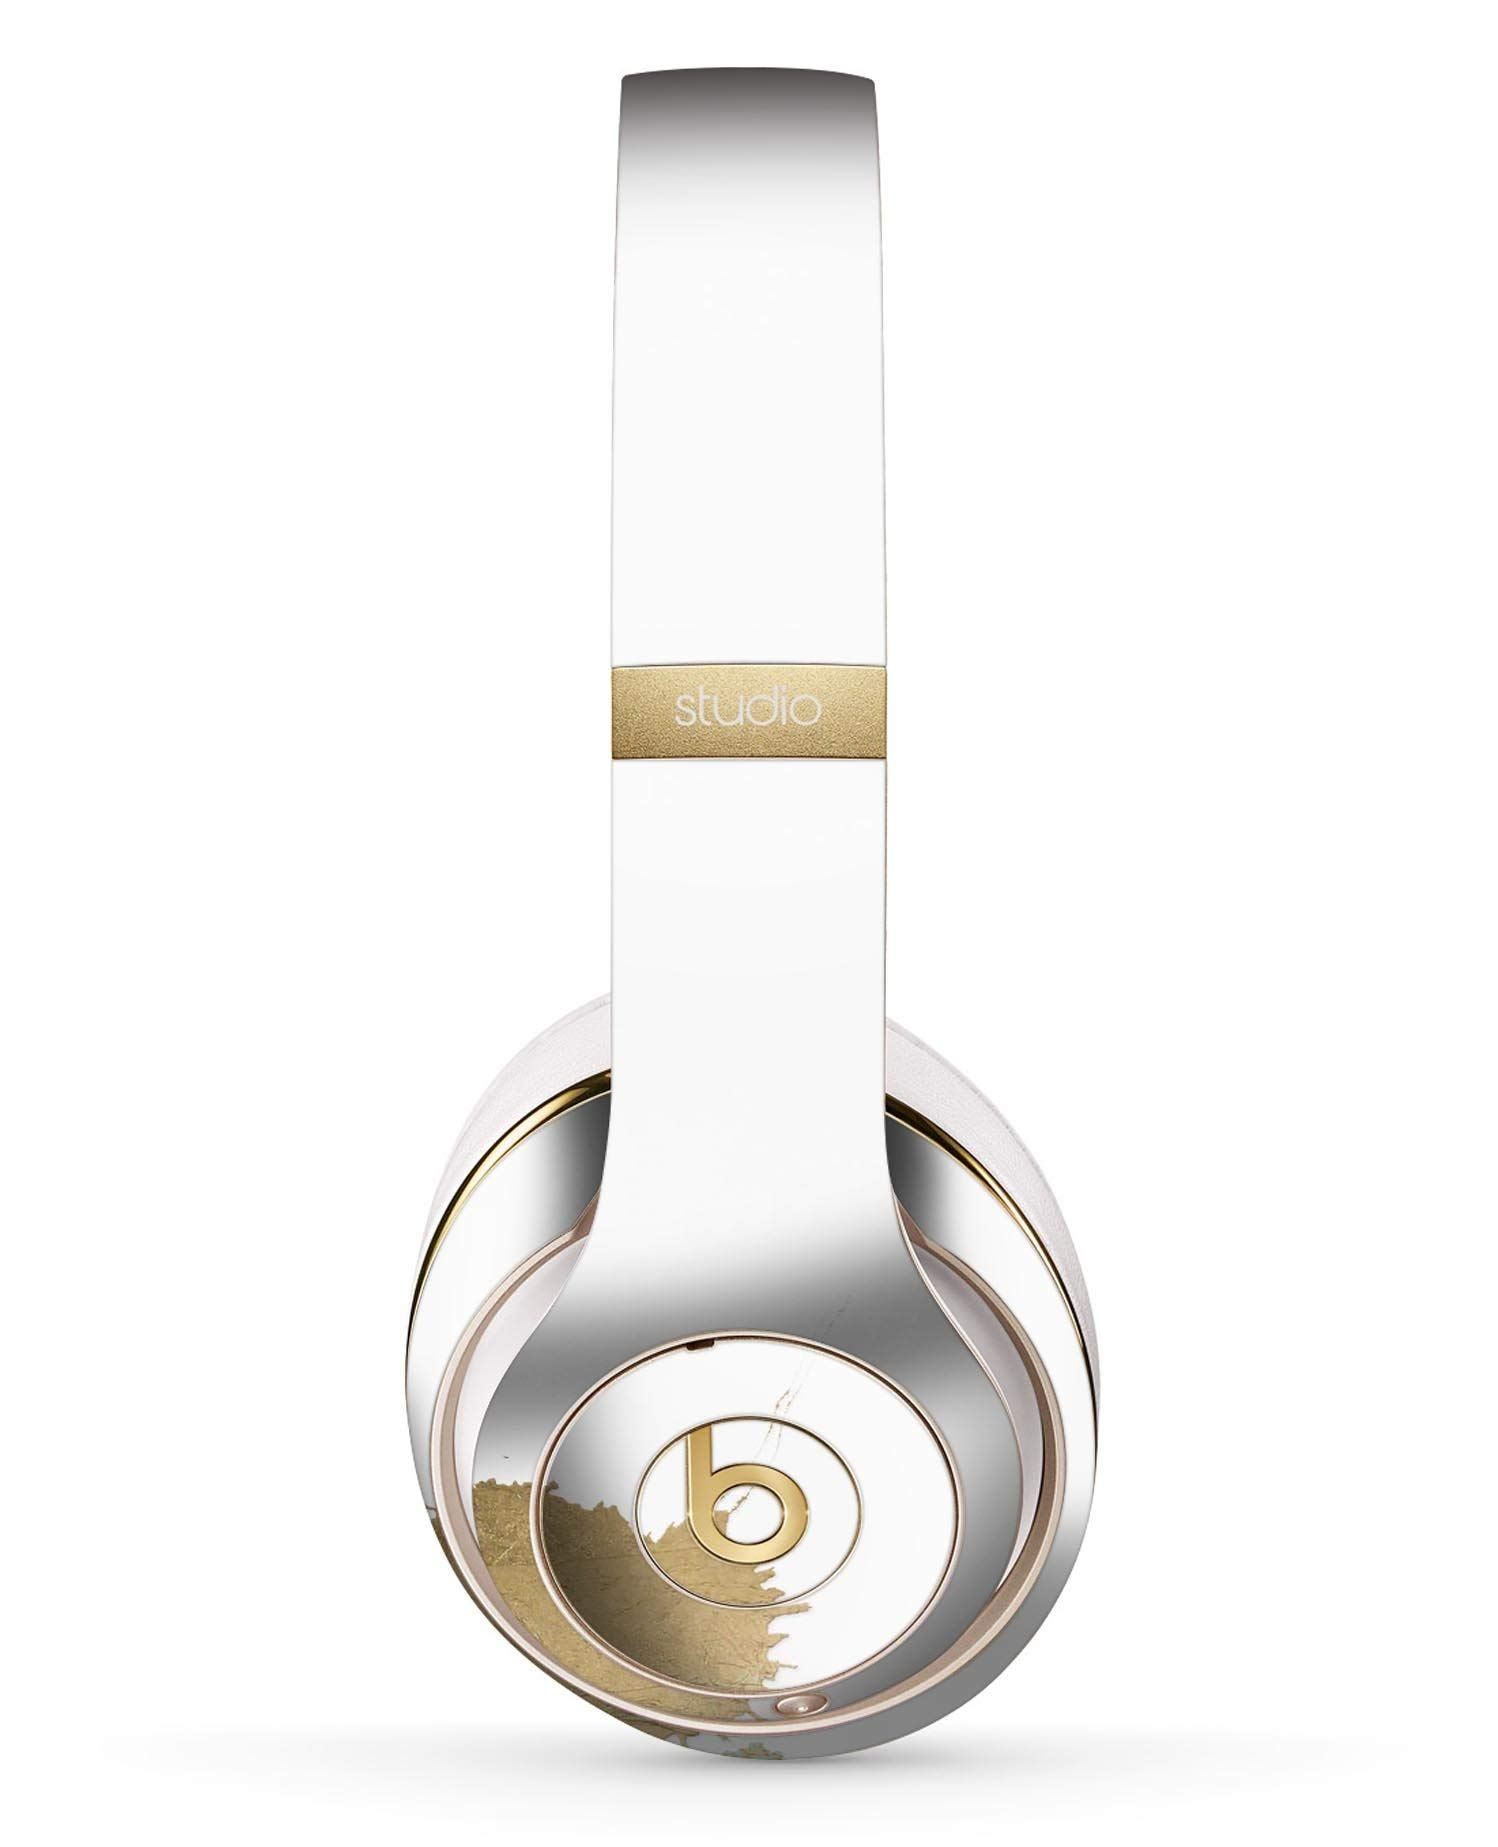 Gold Foiled White v2 Design Skinz Full-Body Premium Authentic Skin Kit for The Beats by Dre Studio 2 or 3 Remastered Wireless Headphones Ultra-Thin Protective Decal Wrap